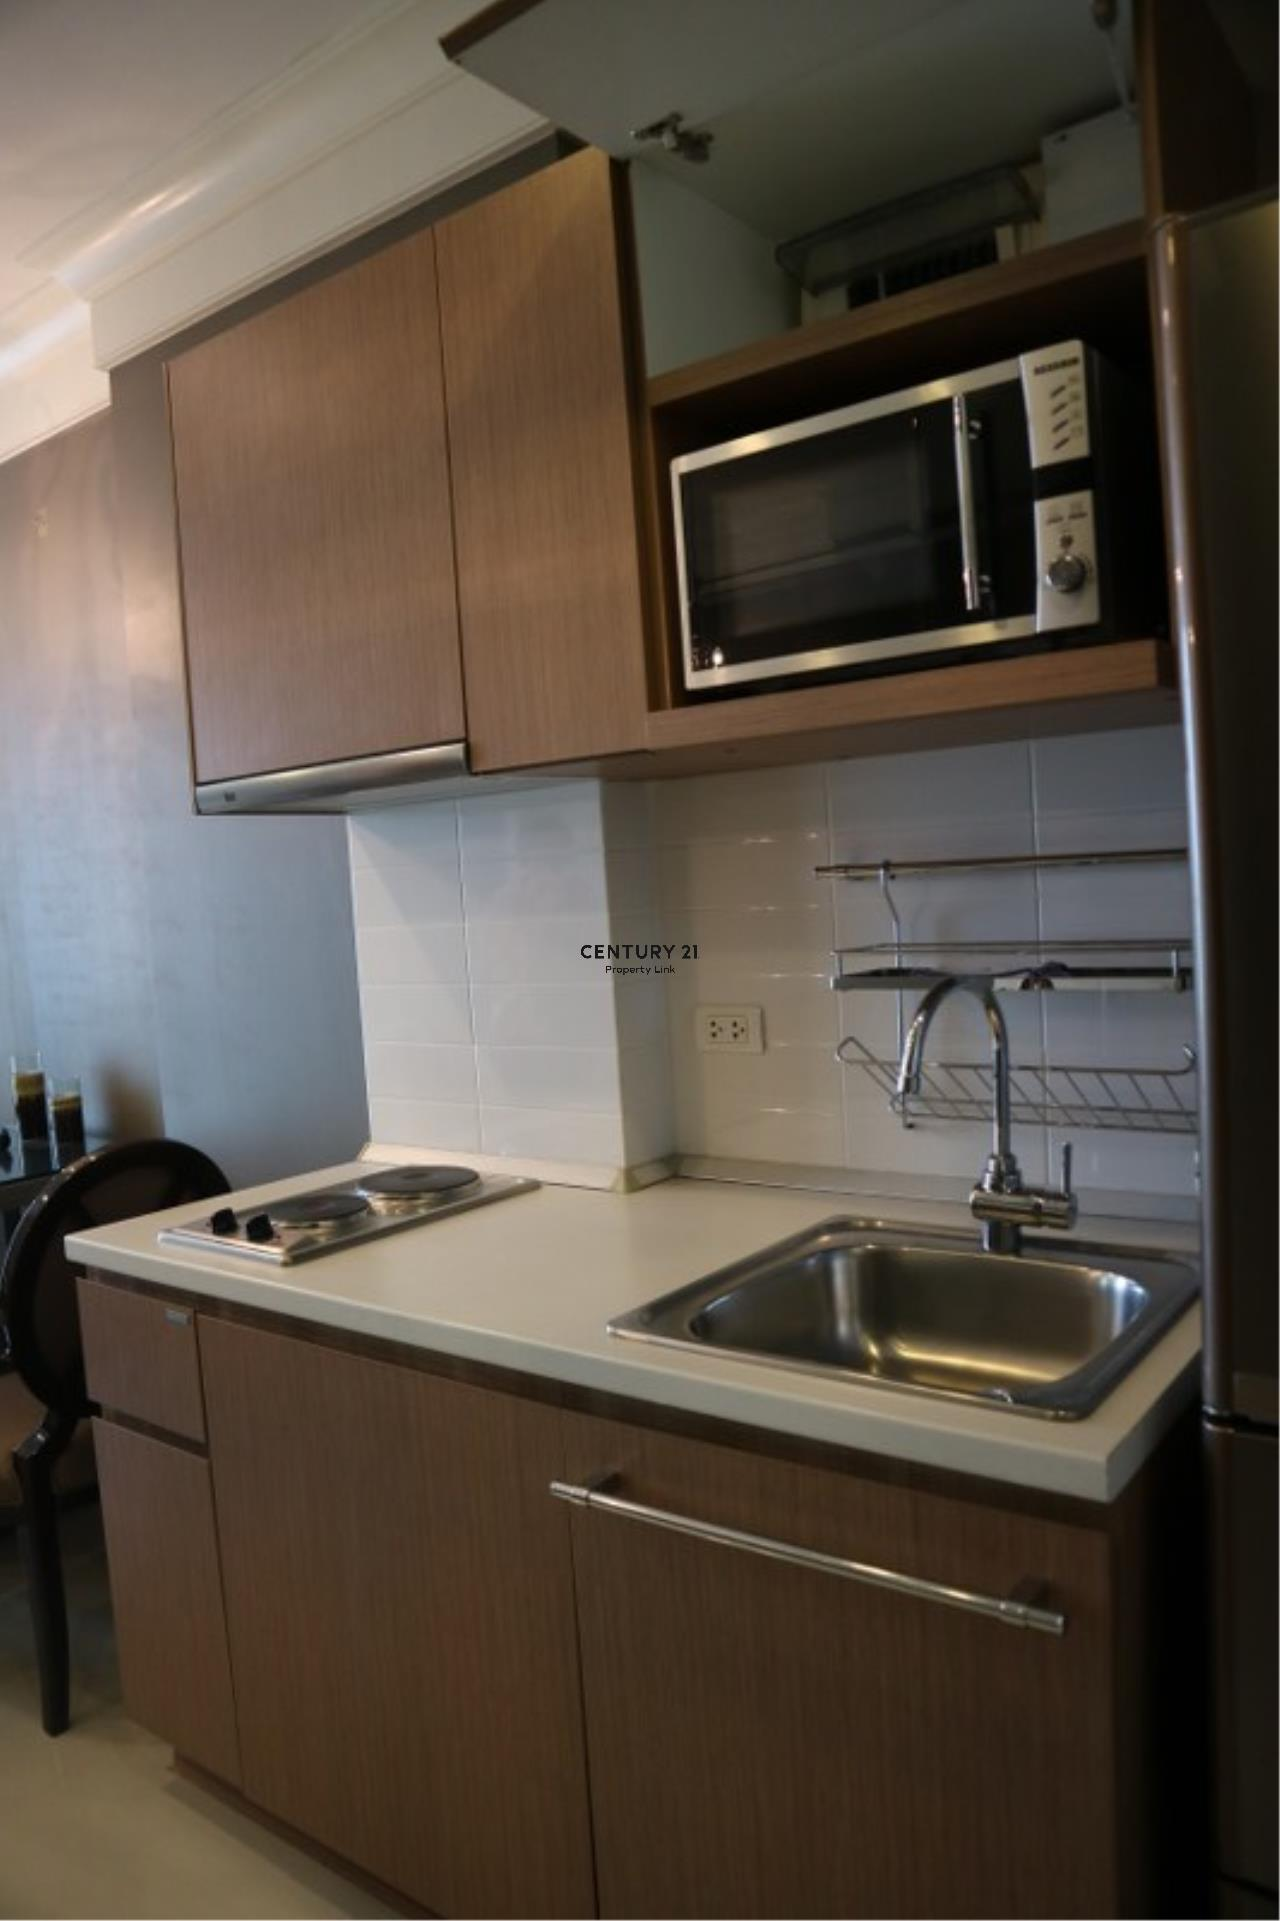 Century21 Property Link Agency's 39-CC-61179 Ideo Mix Phaholyothin Near BTS Saphan Kwai Phaholyothin Road.Room For Sale 1 Bedroom Sale price 5 MB.  15